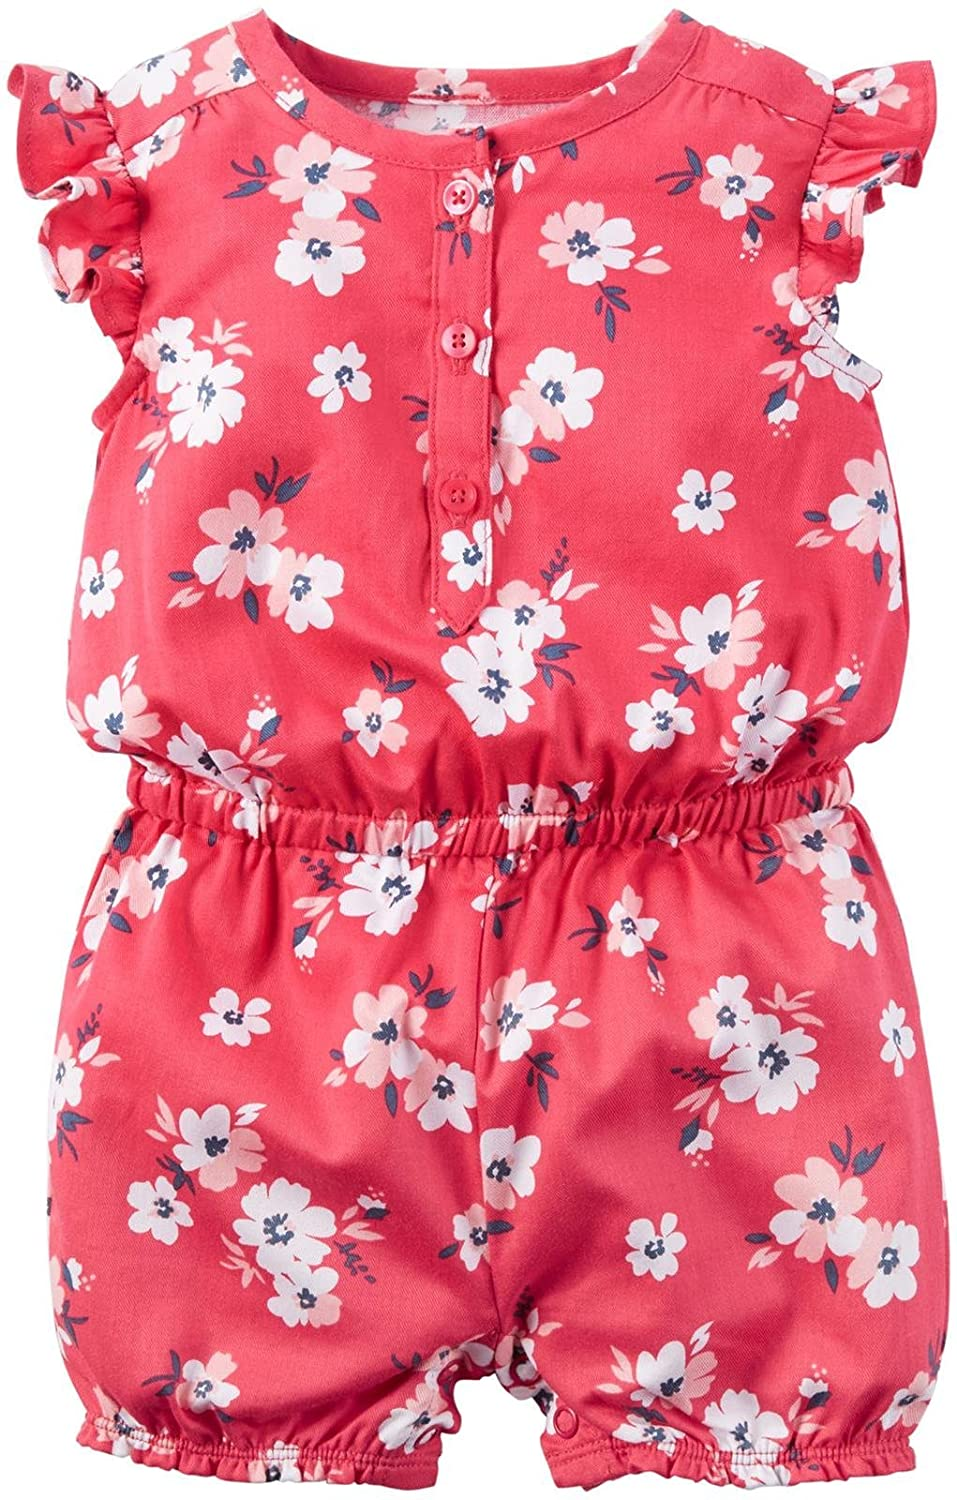 9ea51703390 Amazon.com  Carter s Baby Girls  1 Pc 118h109  Clothing